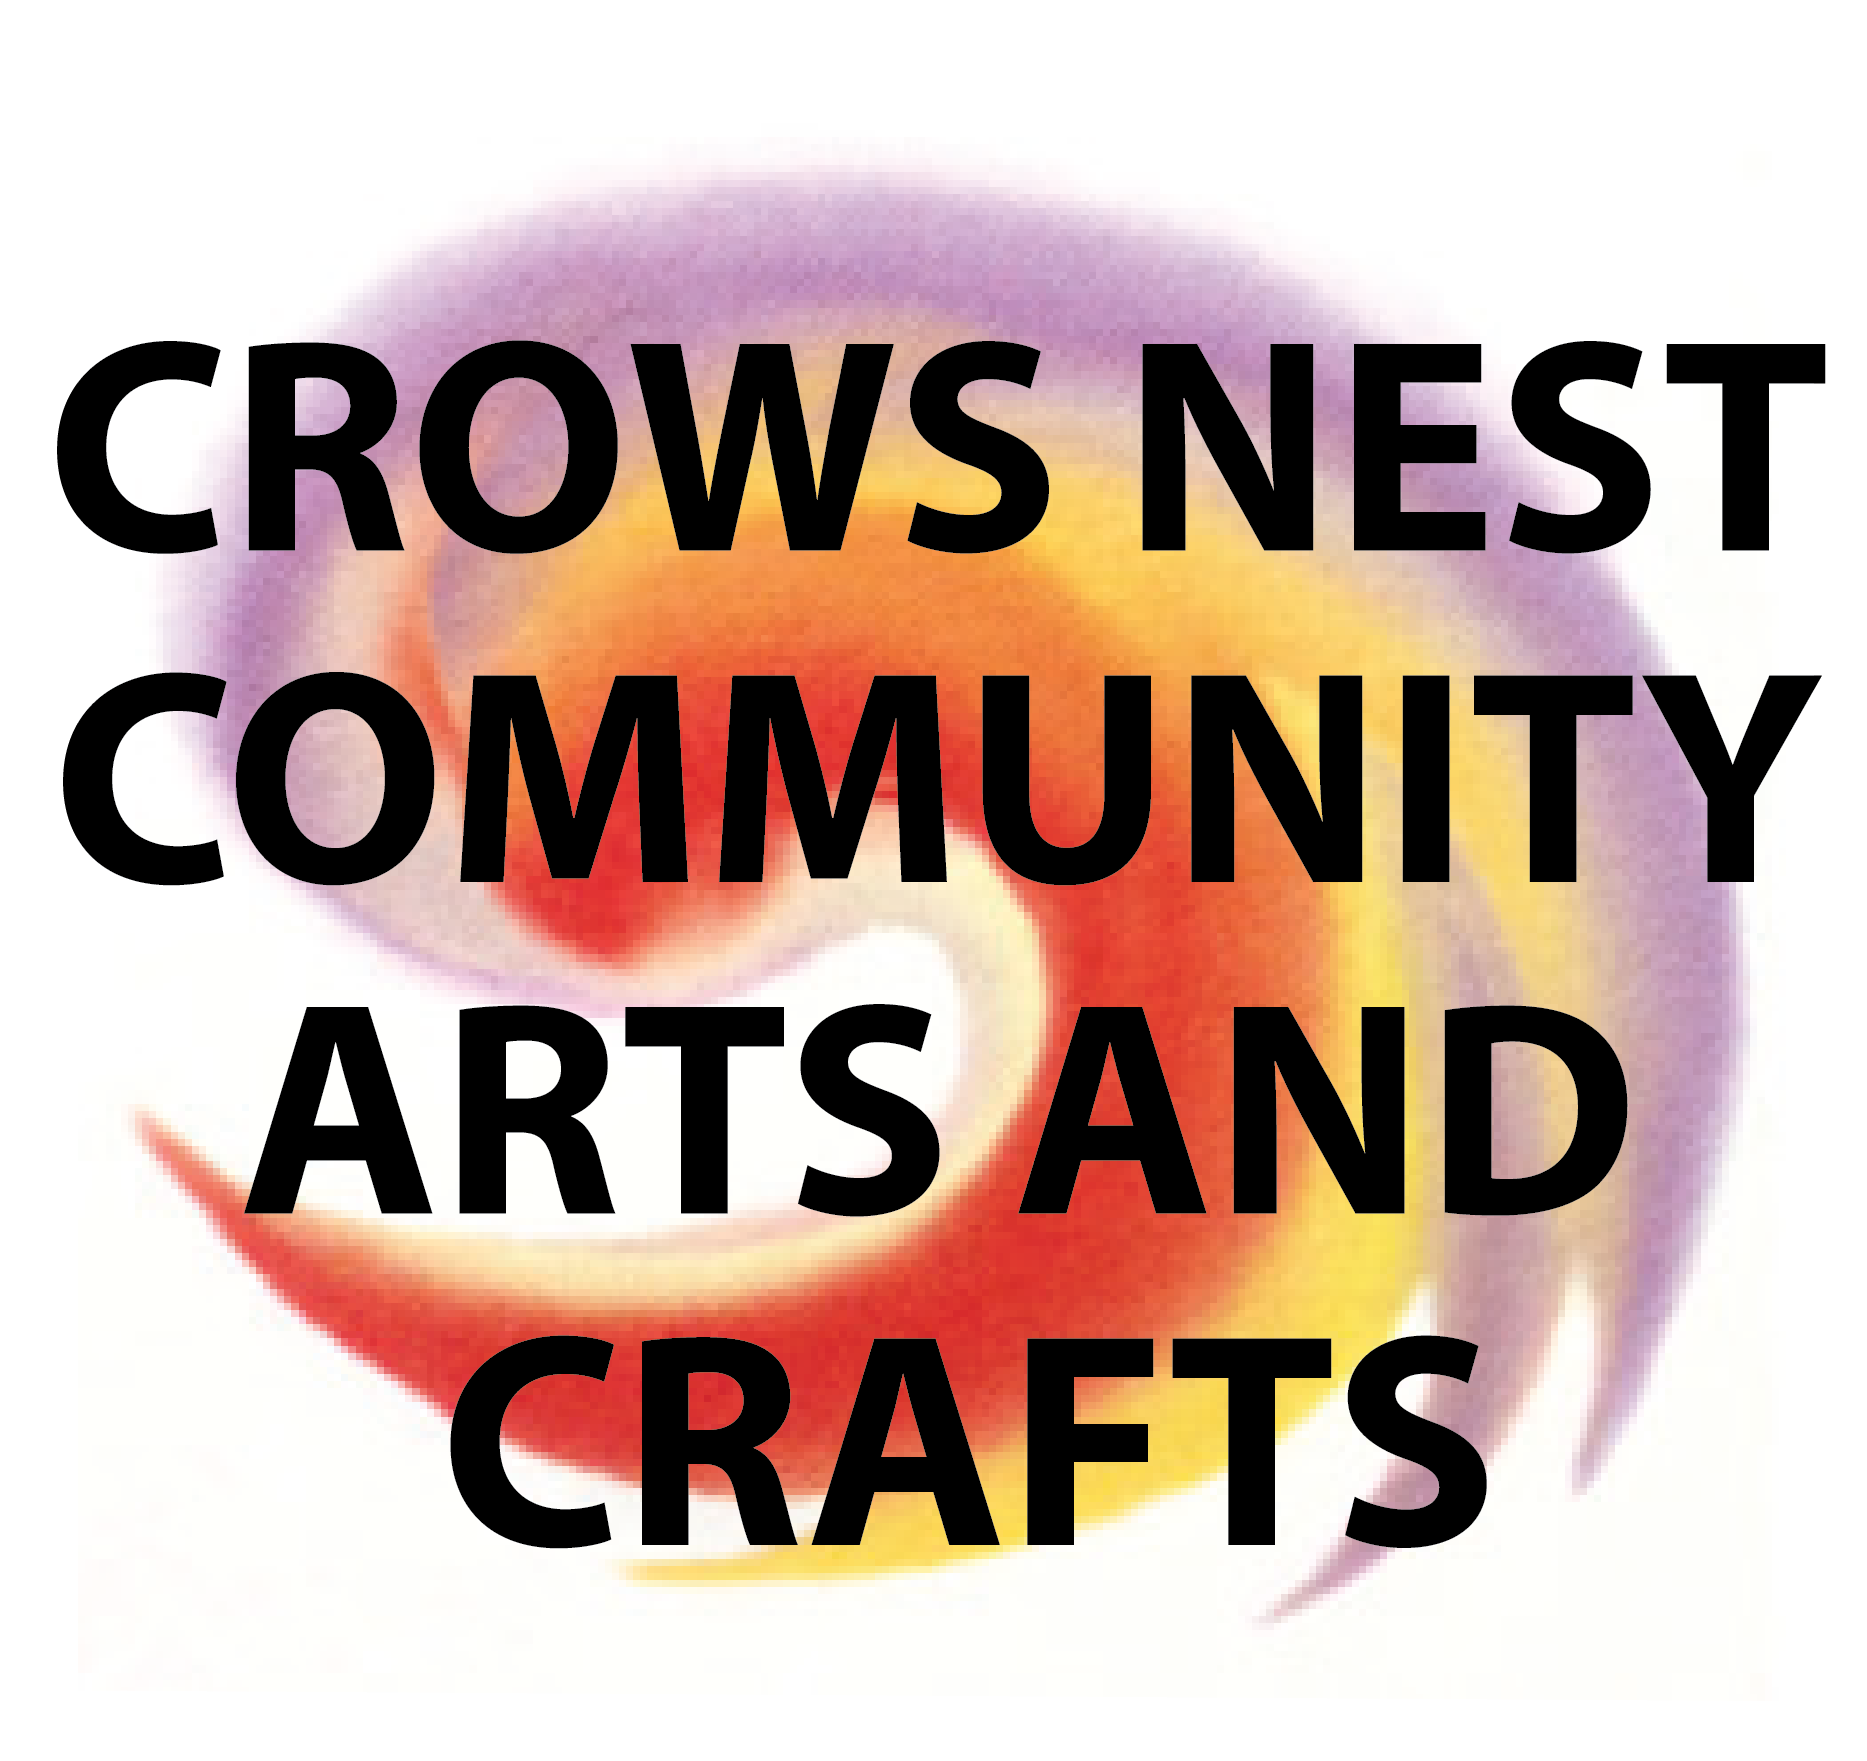 Crows Nest Community Arts and Crafts Queensland